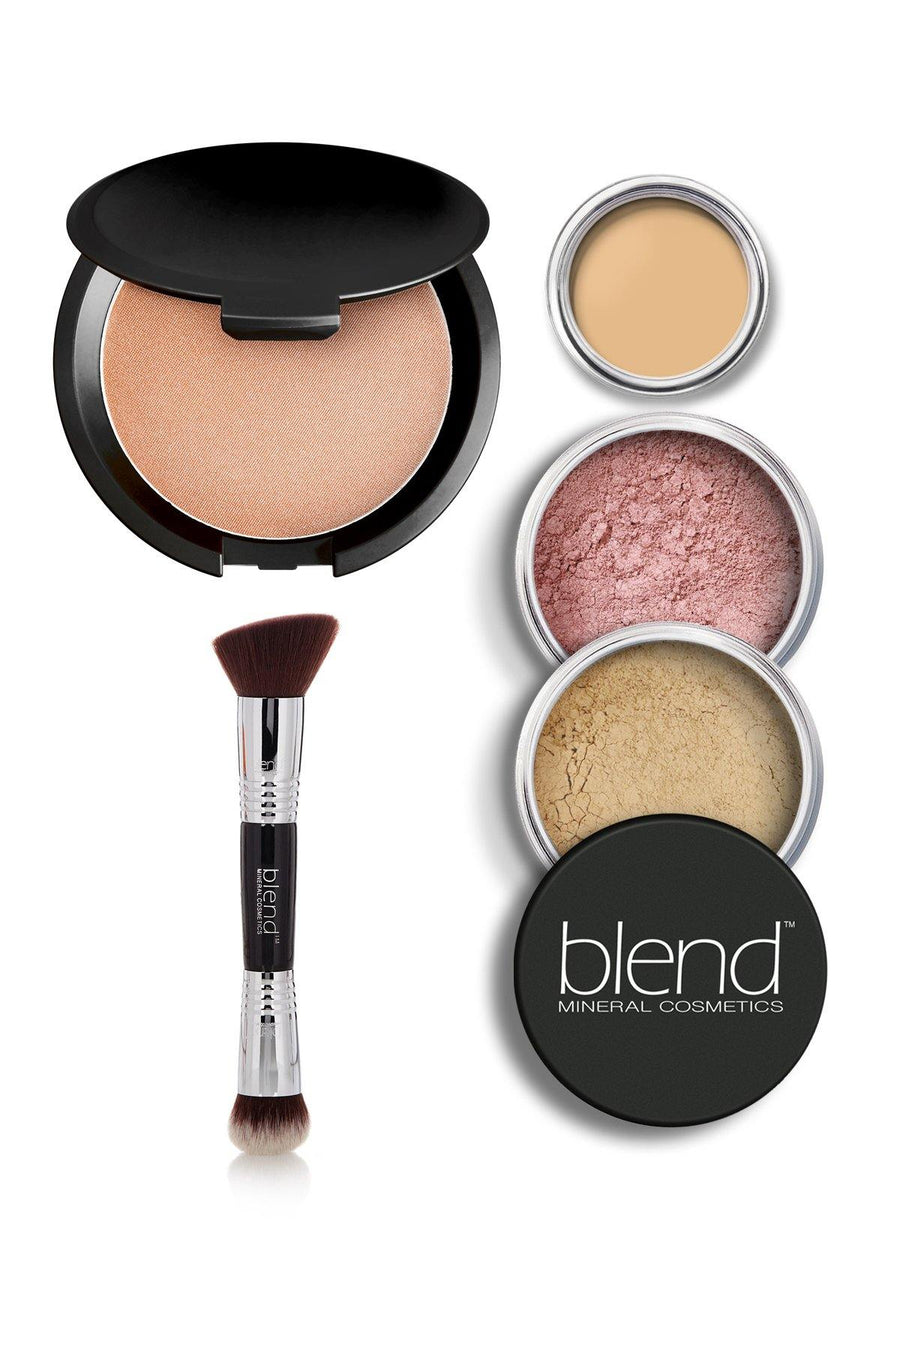 Luminizer Glowing Complexion Kit - Fair - Blend Mineral Cosmetics